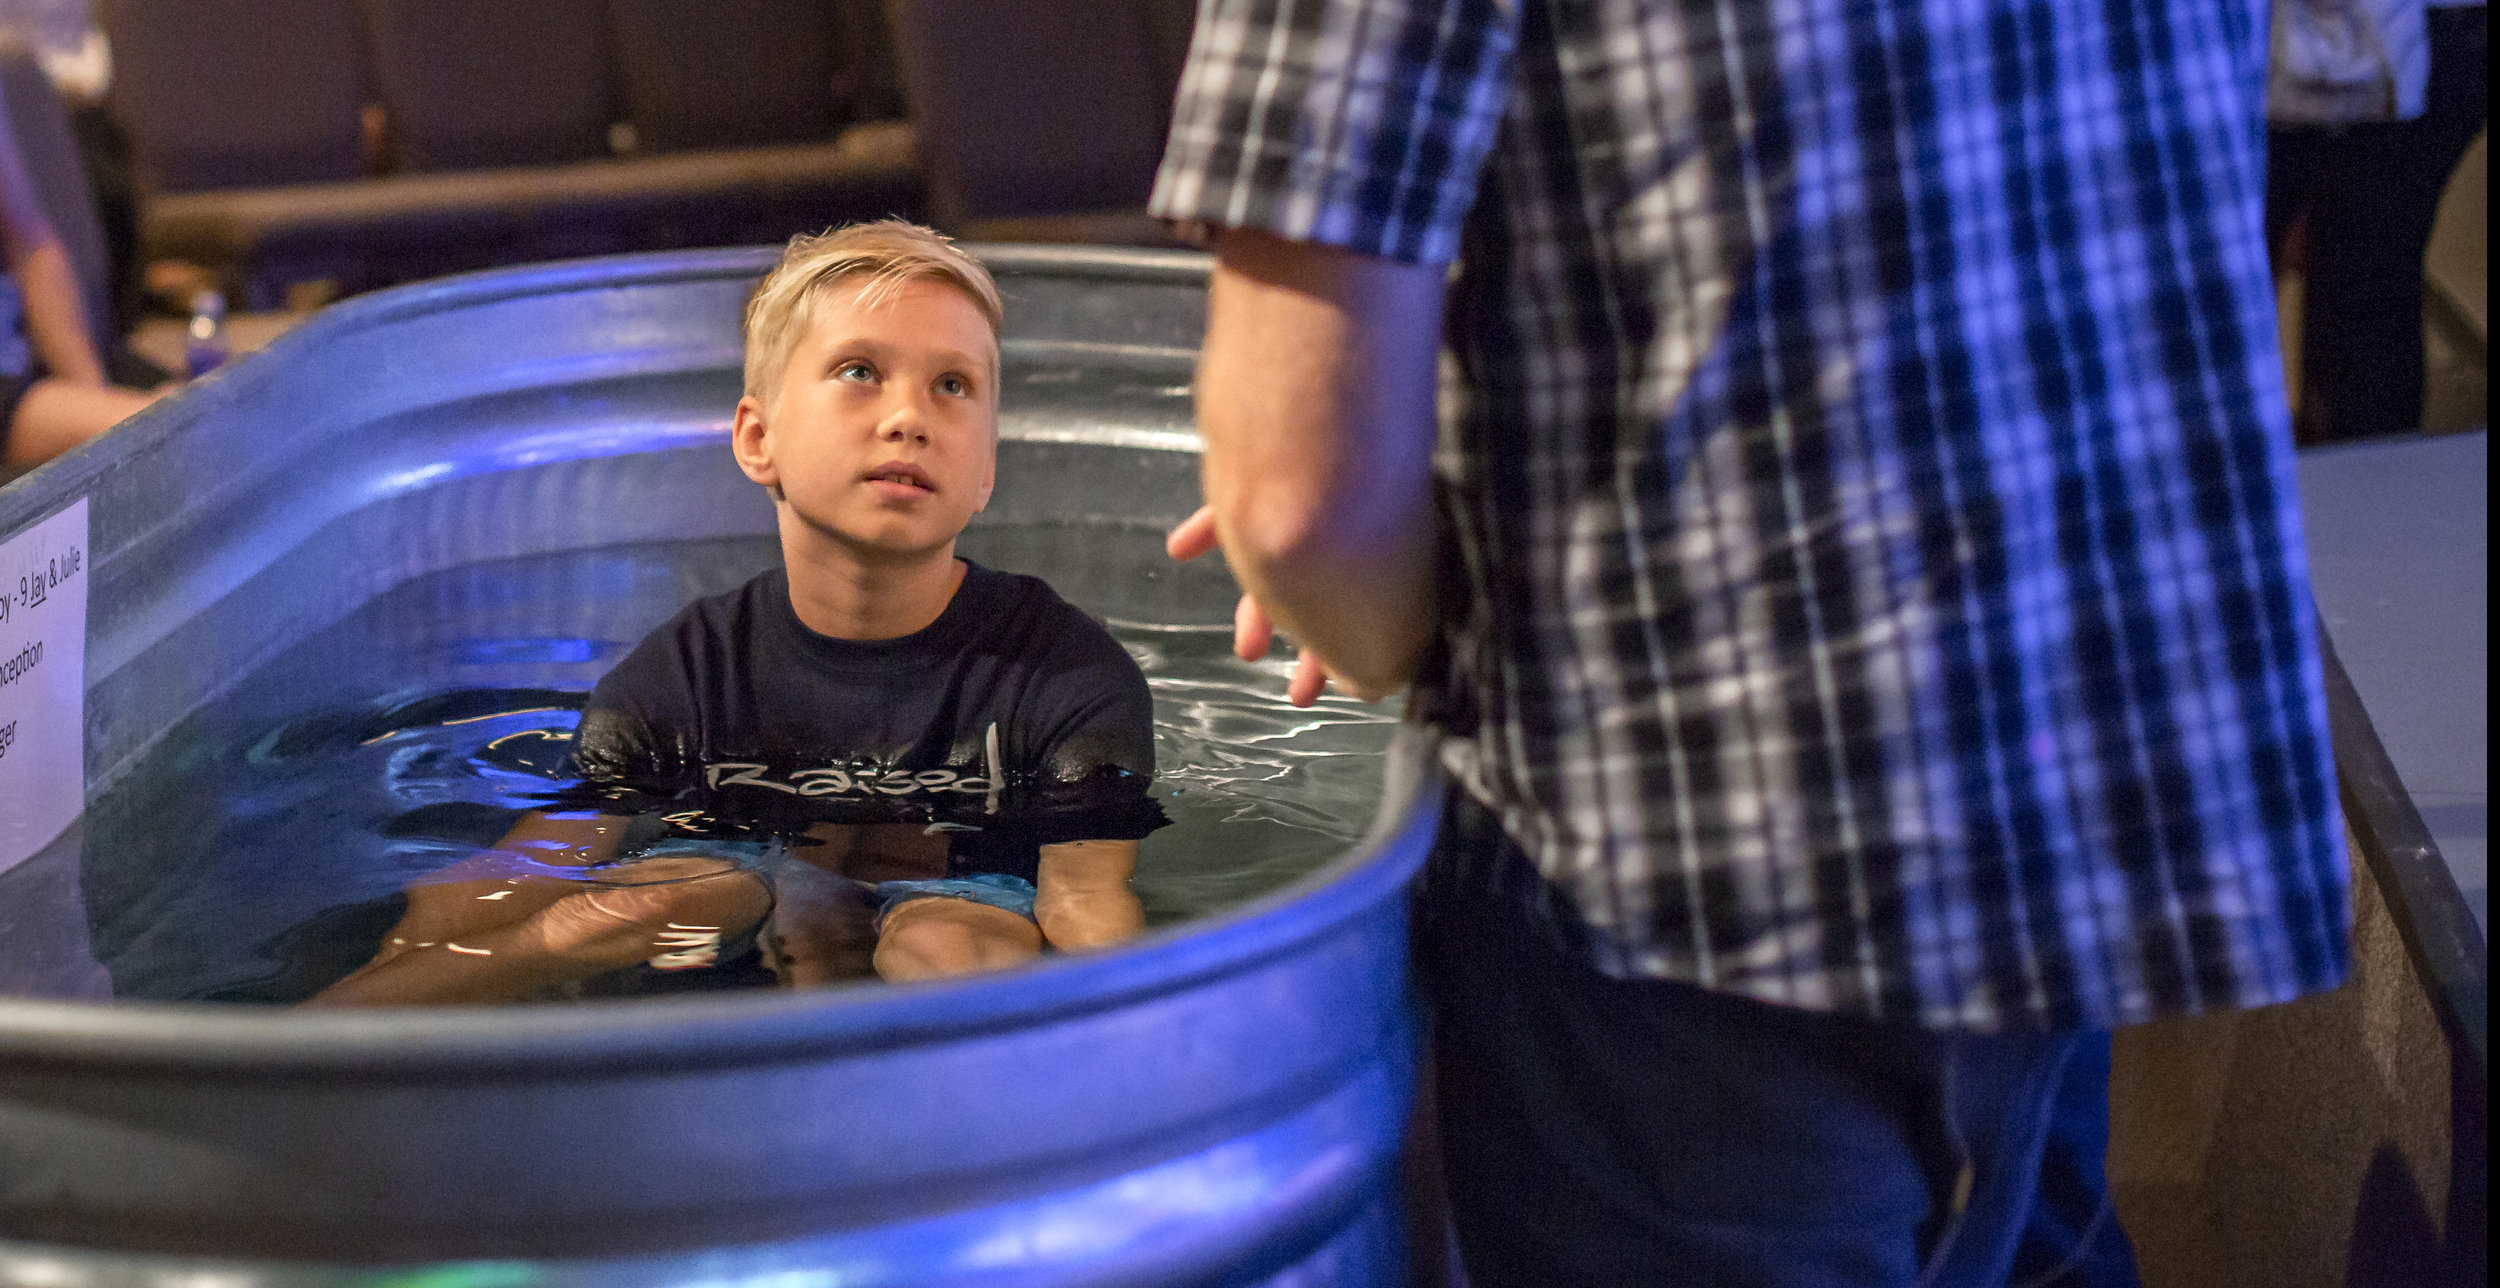 Baptism Photos Sept 2018-3.2.jpg